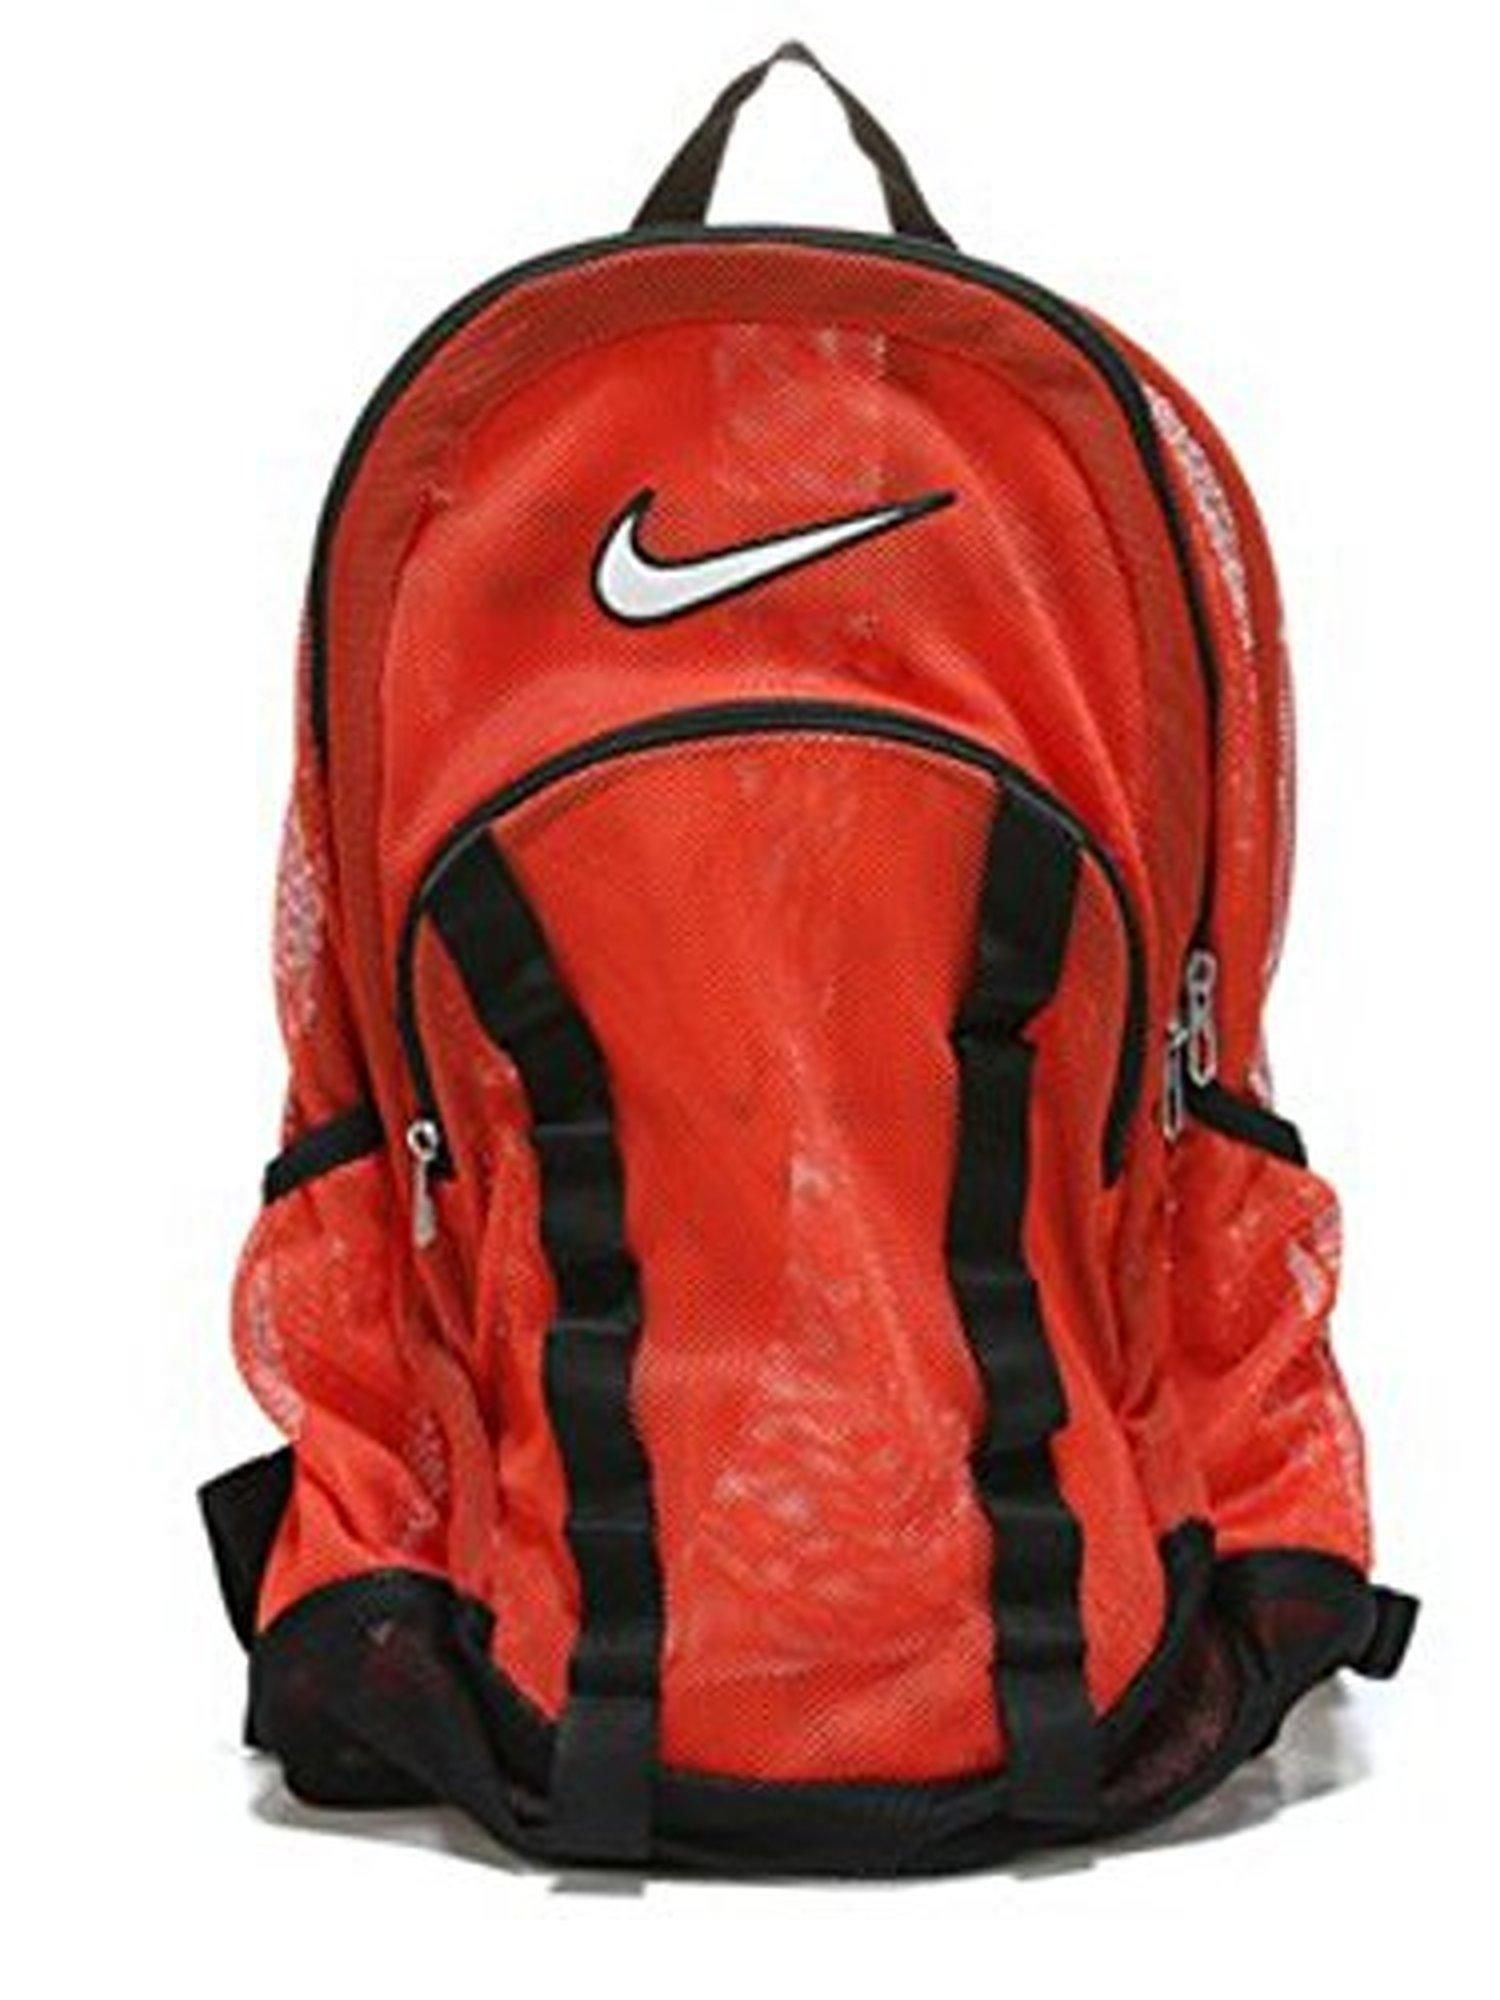 Nike Mesh Brasilia XL Backpack in Orange for Men and Women - Brought to you  by Avarsha.com bc8f11968